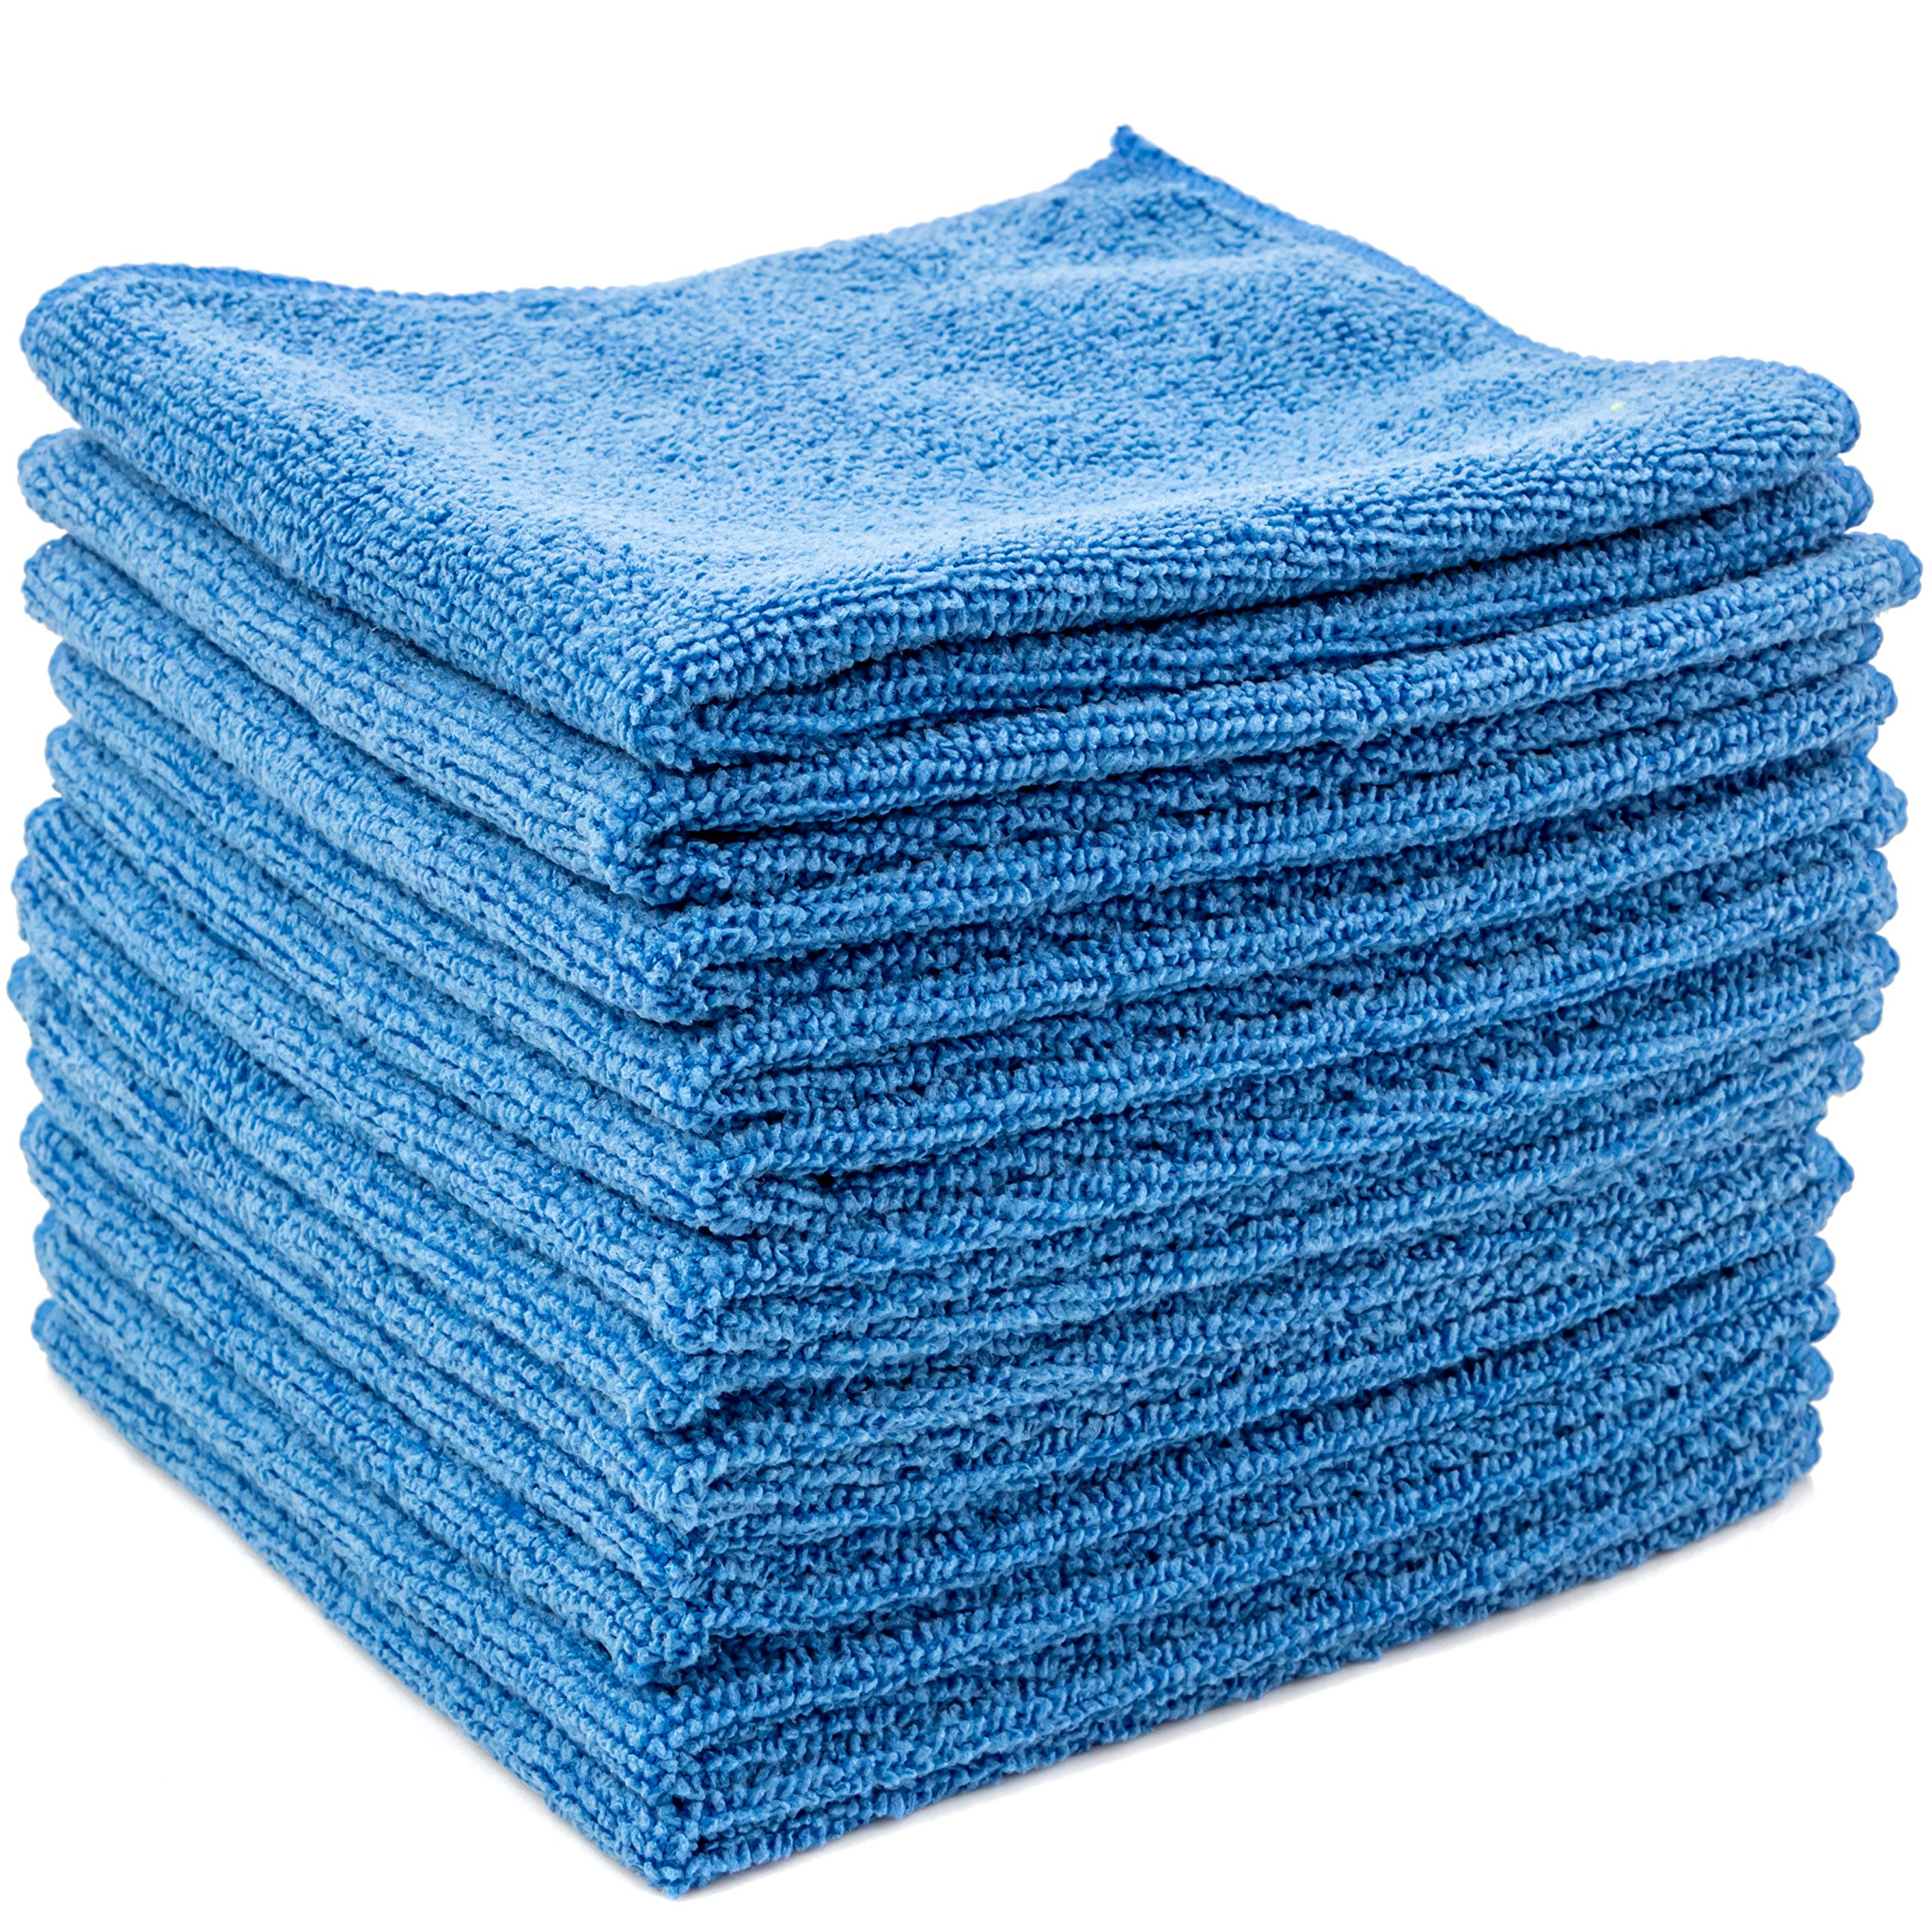 Dry Rite Best Magic Microfiber Cloth - Professional Series Cleaning Towels for Fine Auto Finishes, Interior, Chrome, Kitchen, Bath, TV, Glass- Non Scratching, Streak Free, Use Wet or Dry - 12'' x 12''